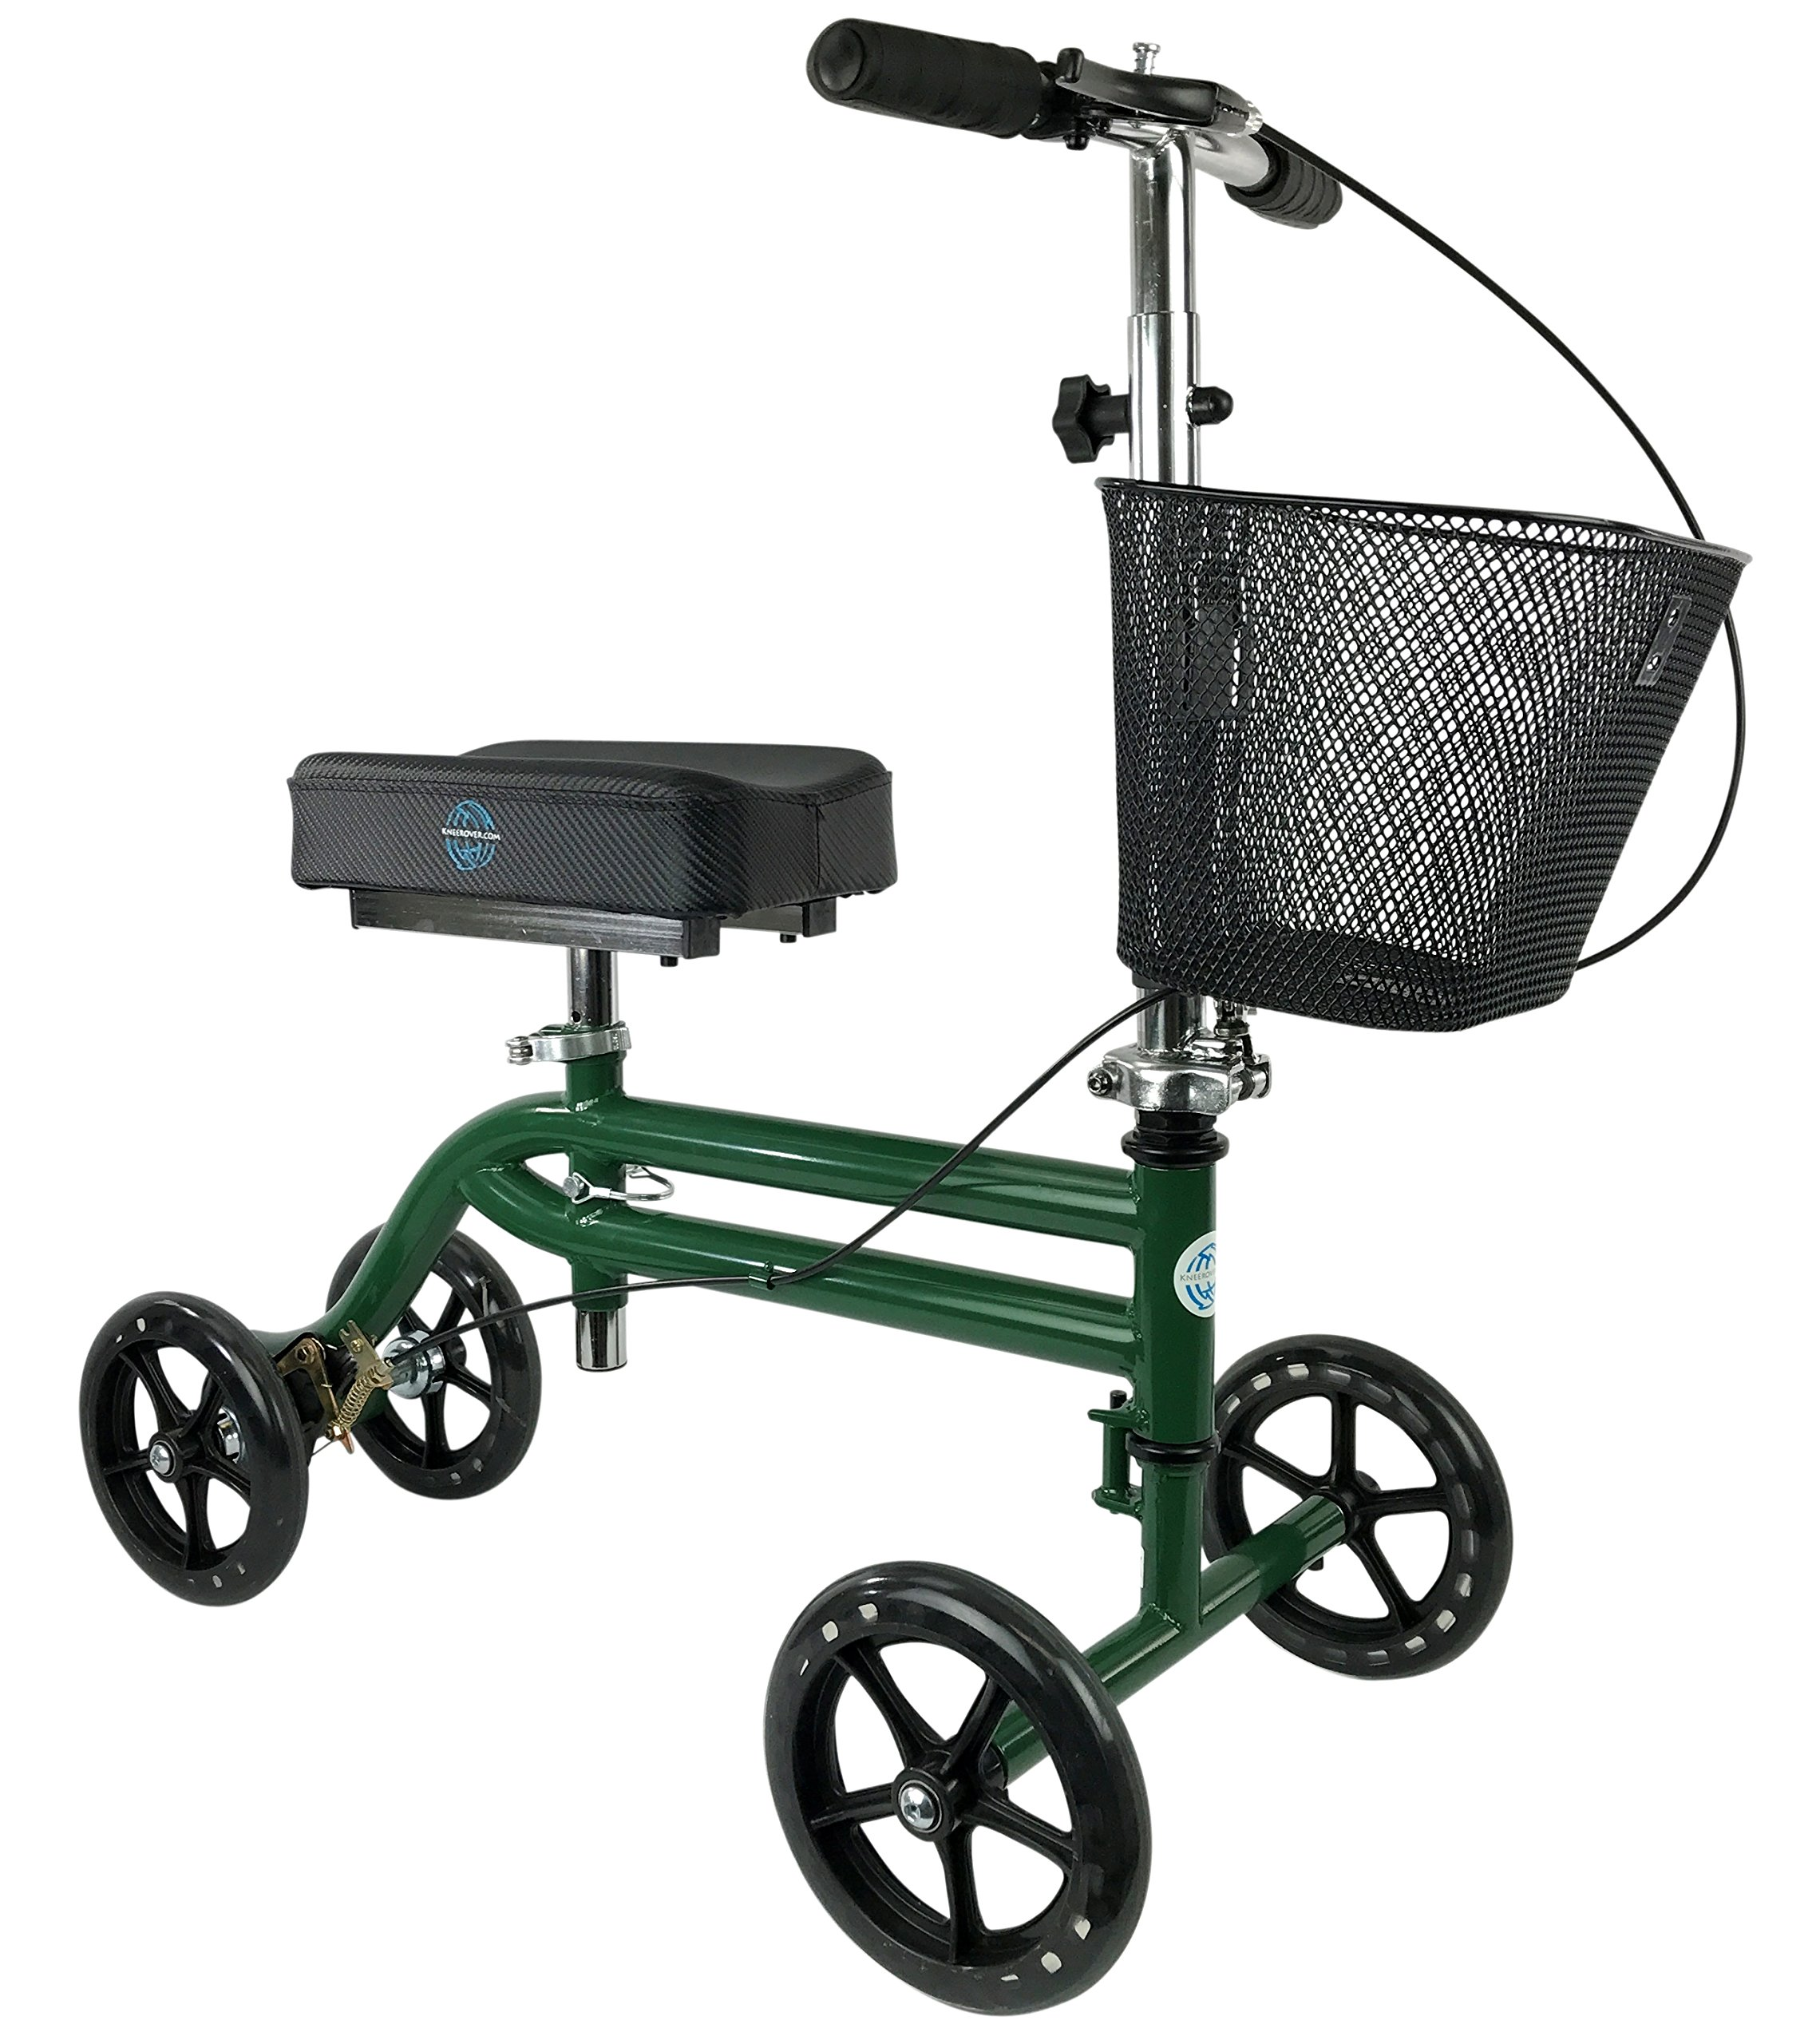 KneeRover Steerable Knee Scooter Knee Walker Crutches Alternative in Green